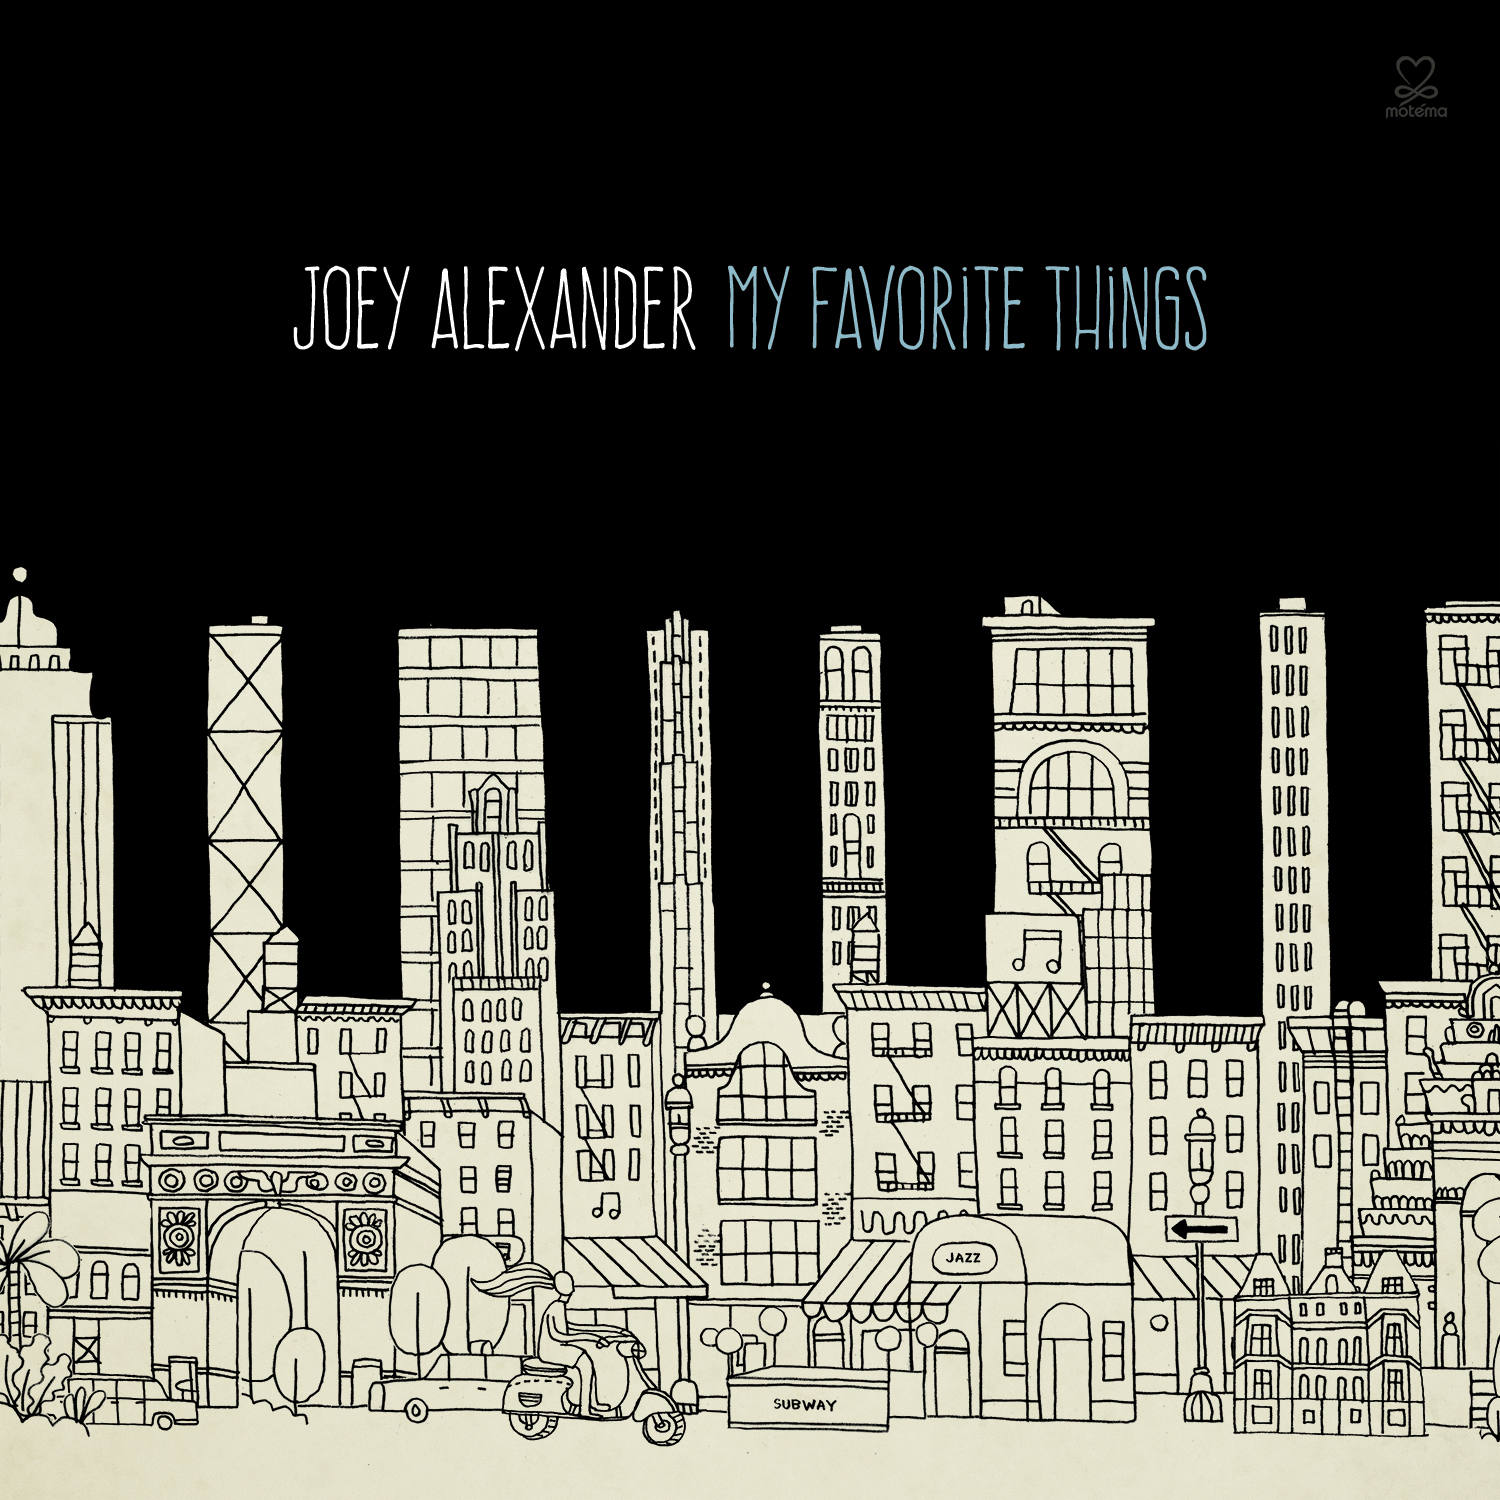 JOEY ALEXANDER:  MY FAVORITE THINGS